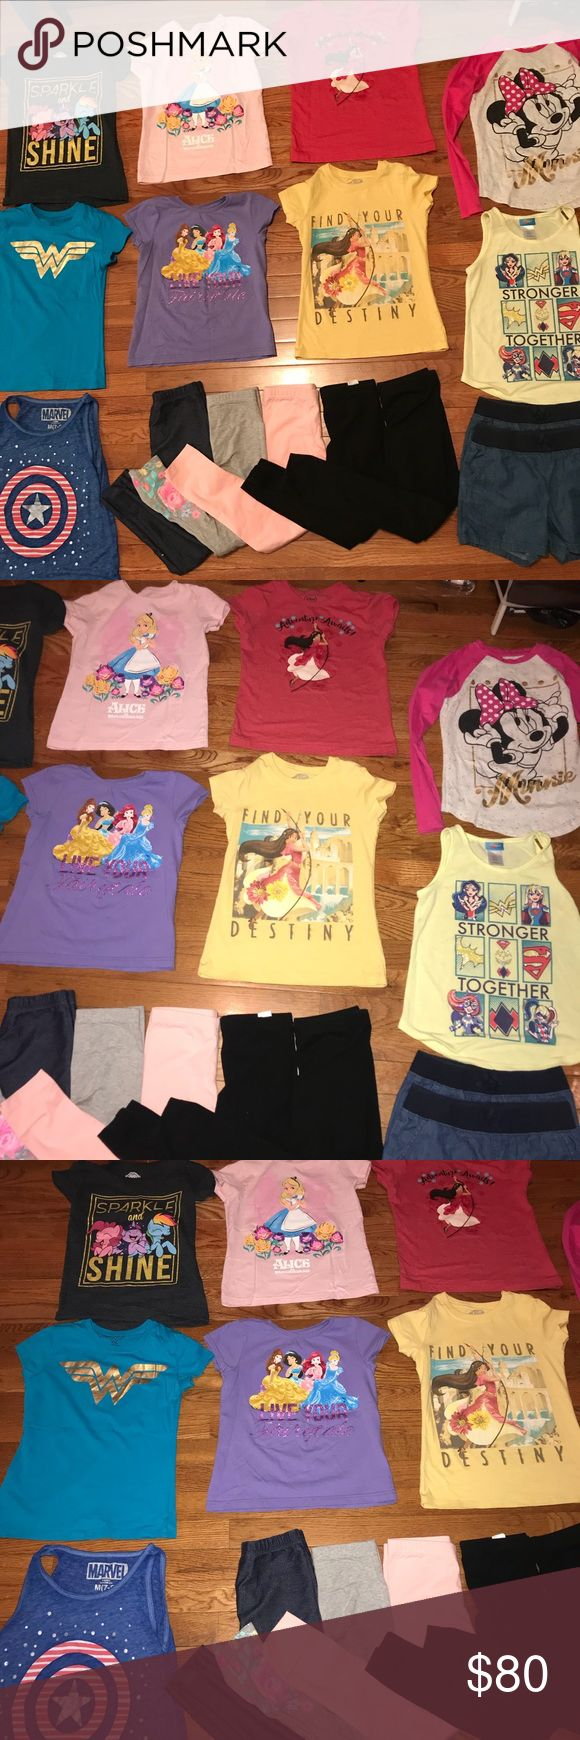 Girls large bundle Girls large bundle of 16 items size medium(7-8) which include 6 short sleeve tees( my little pony, Wonder Woman, Disney princess, Alice In Wonderland, 2 Elena of avalor), 1 3/4 sleeve Minnie Mouse tee, 2 tank tops( superhero girls and captain america)5 leggings(first 3 leggings carters size 7,black leggings cat and jack(target brand), and children's place) and 2 shorts( 1 size 6X-7 and 1 size 8). All in great condition no stains or rips. Brands include Disney, carters…